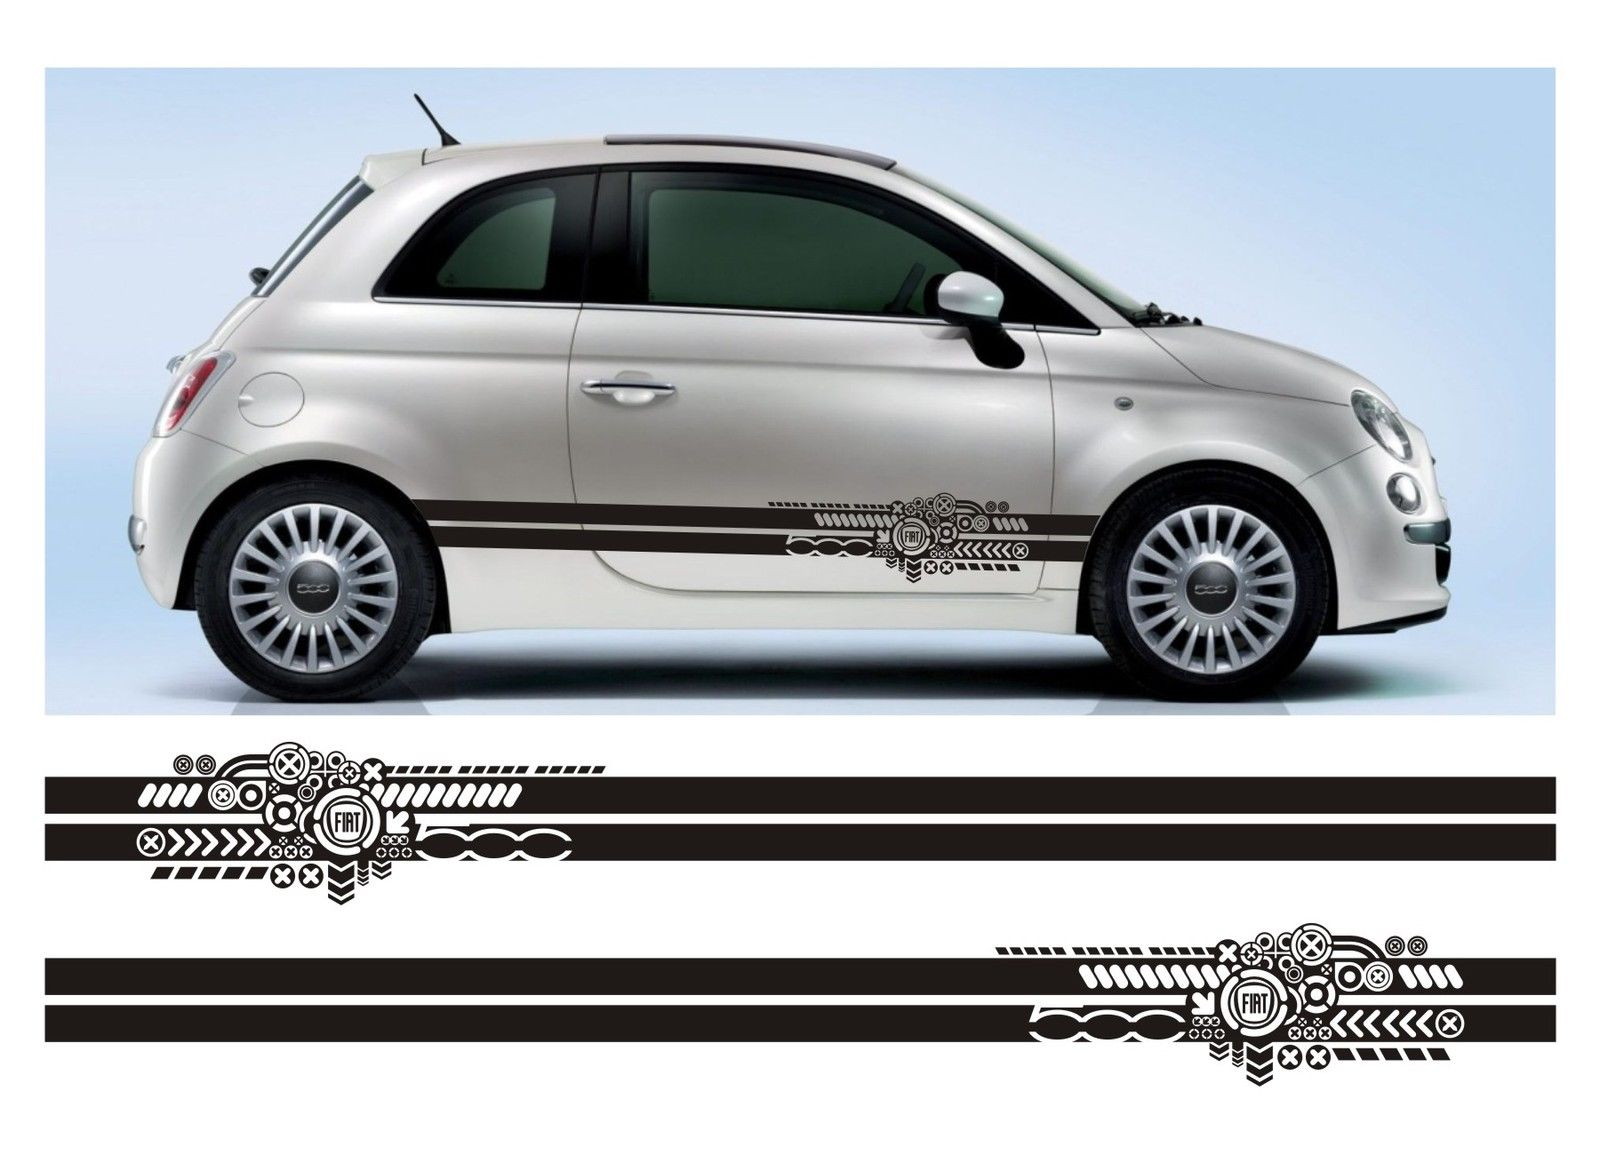 ssk019 all year fiat 500 stripe sticker kit italy italian cinquecento abarth infinity270. Black Bedroom Furniture Sets. Home Design Ideas